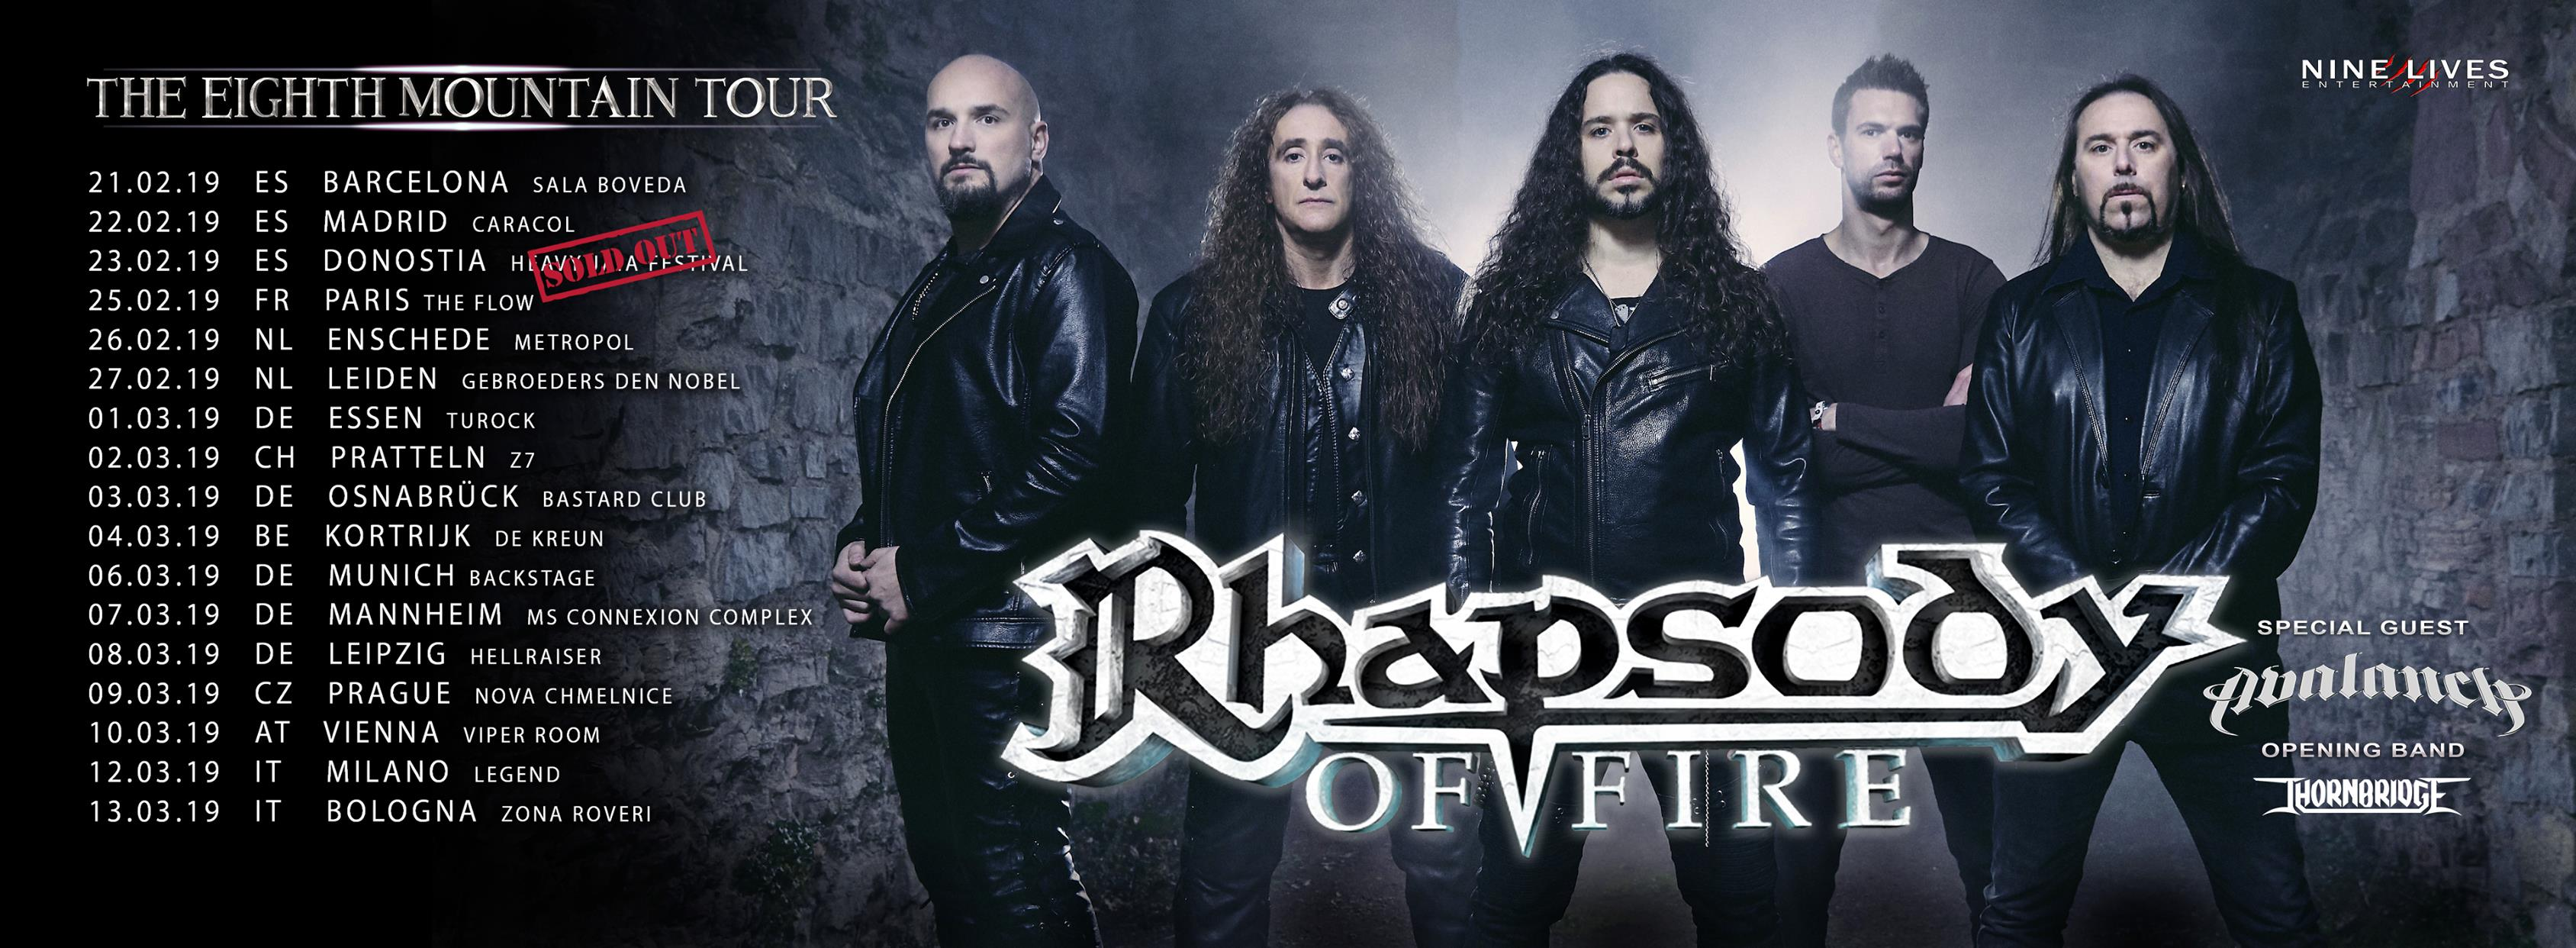 Rhapsody Of Fire The Eighth Mountain Tour